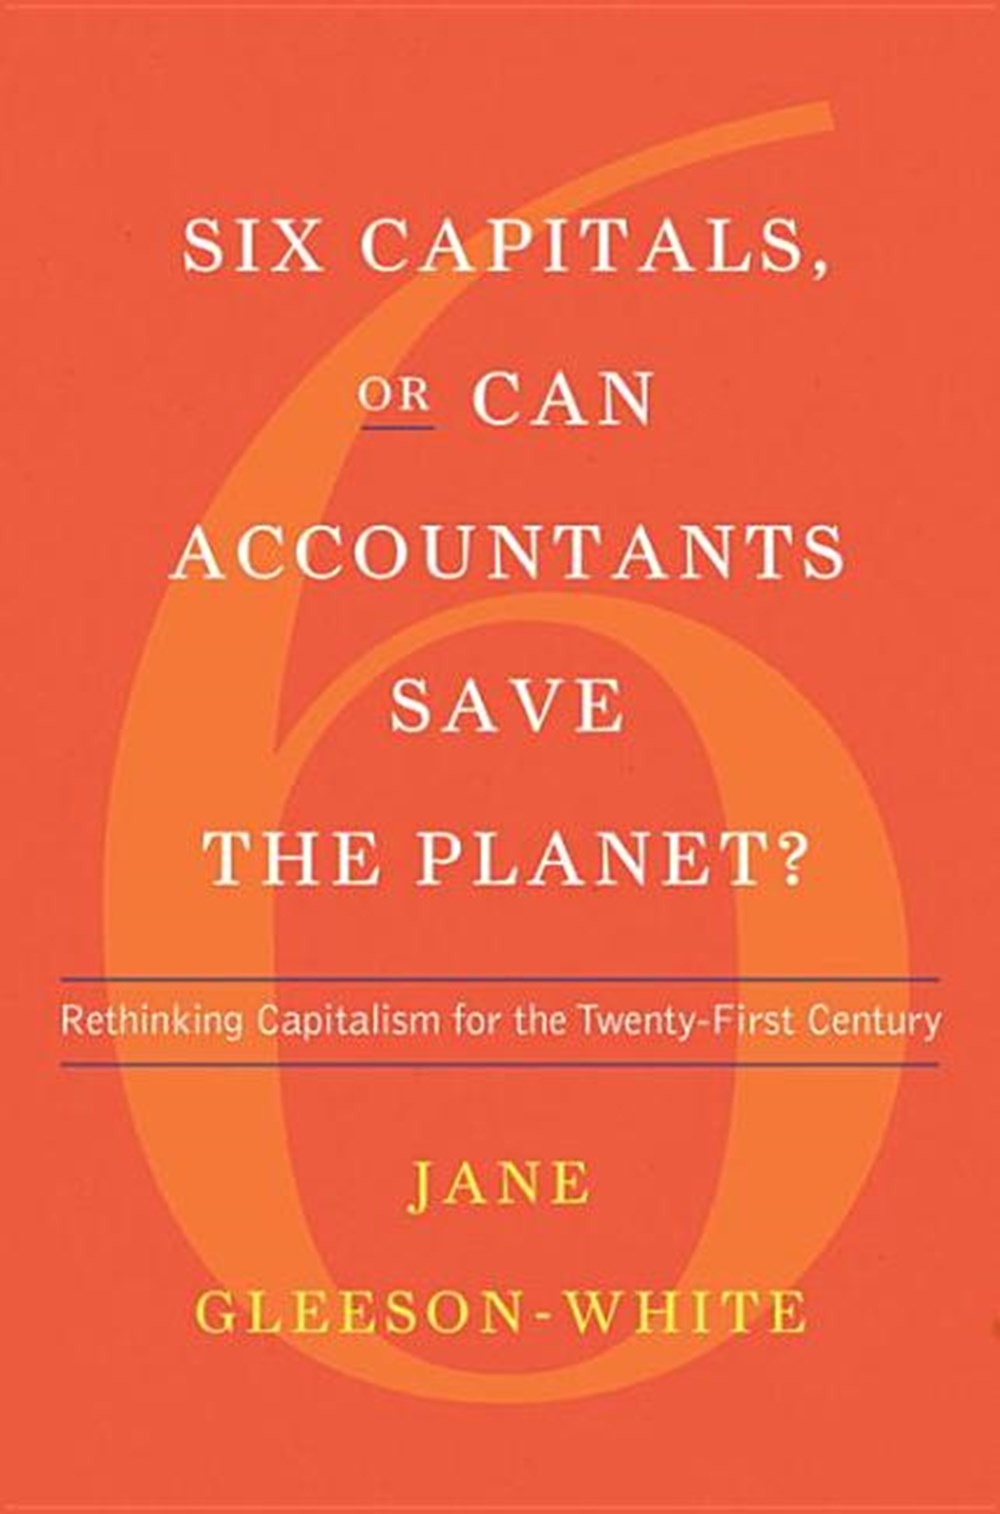 Six Capitals, or Can Accountants Save the Planet? Rethinking Capitalism for the Twenty-First Century